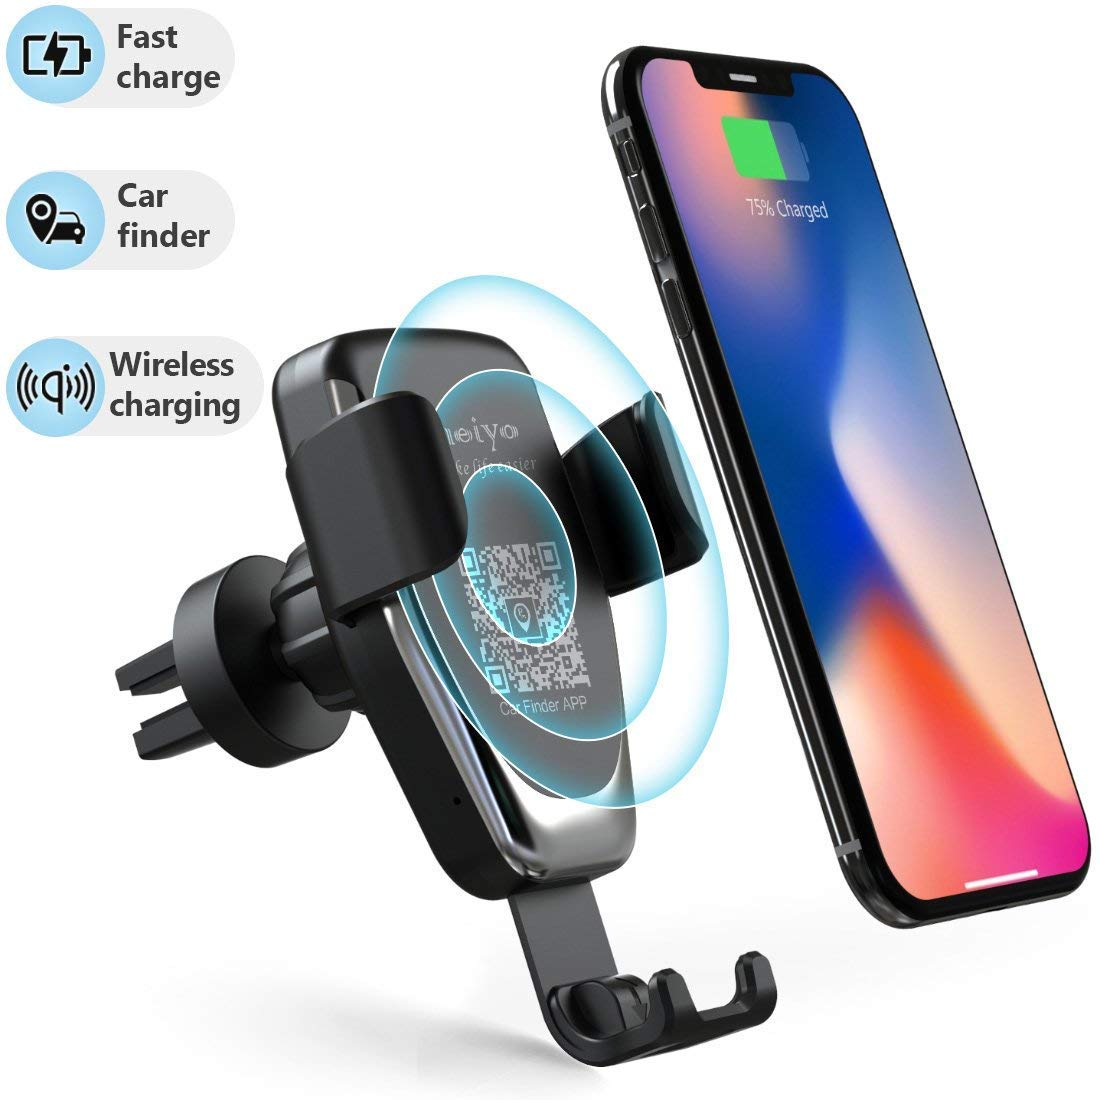 Wireless Car Charger Phone Mount, 2 in 1 Car Air Vent & Dashboard Universal Phone Holder Fast Charging Compatible with iPhone 8/8 Plus/X/XS/XR/XS MAX,Samsung Galaxy and All QI-Enabled Smartphone Heiyo